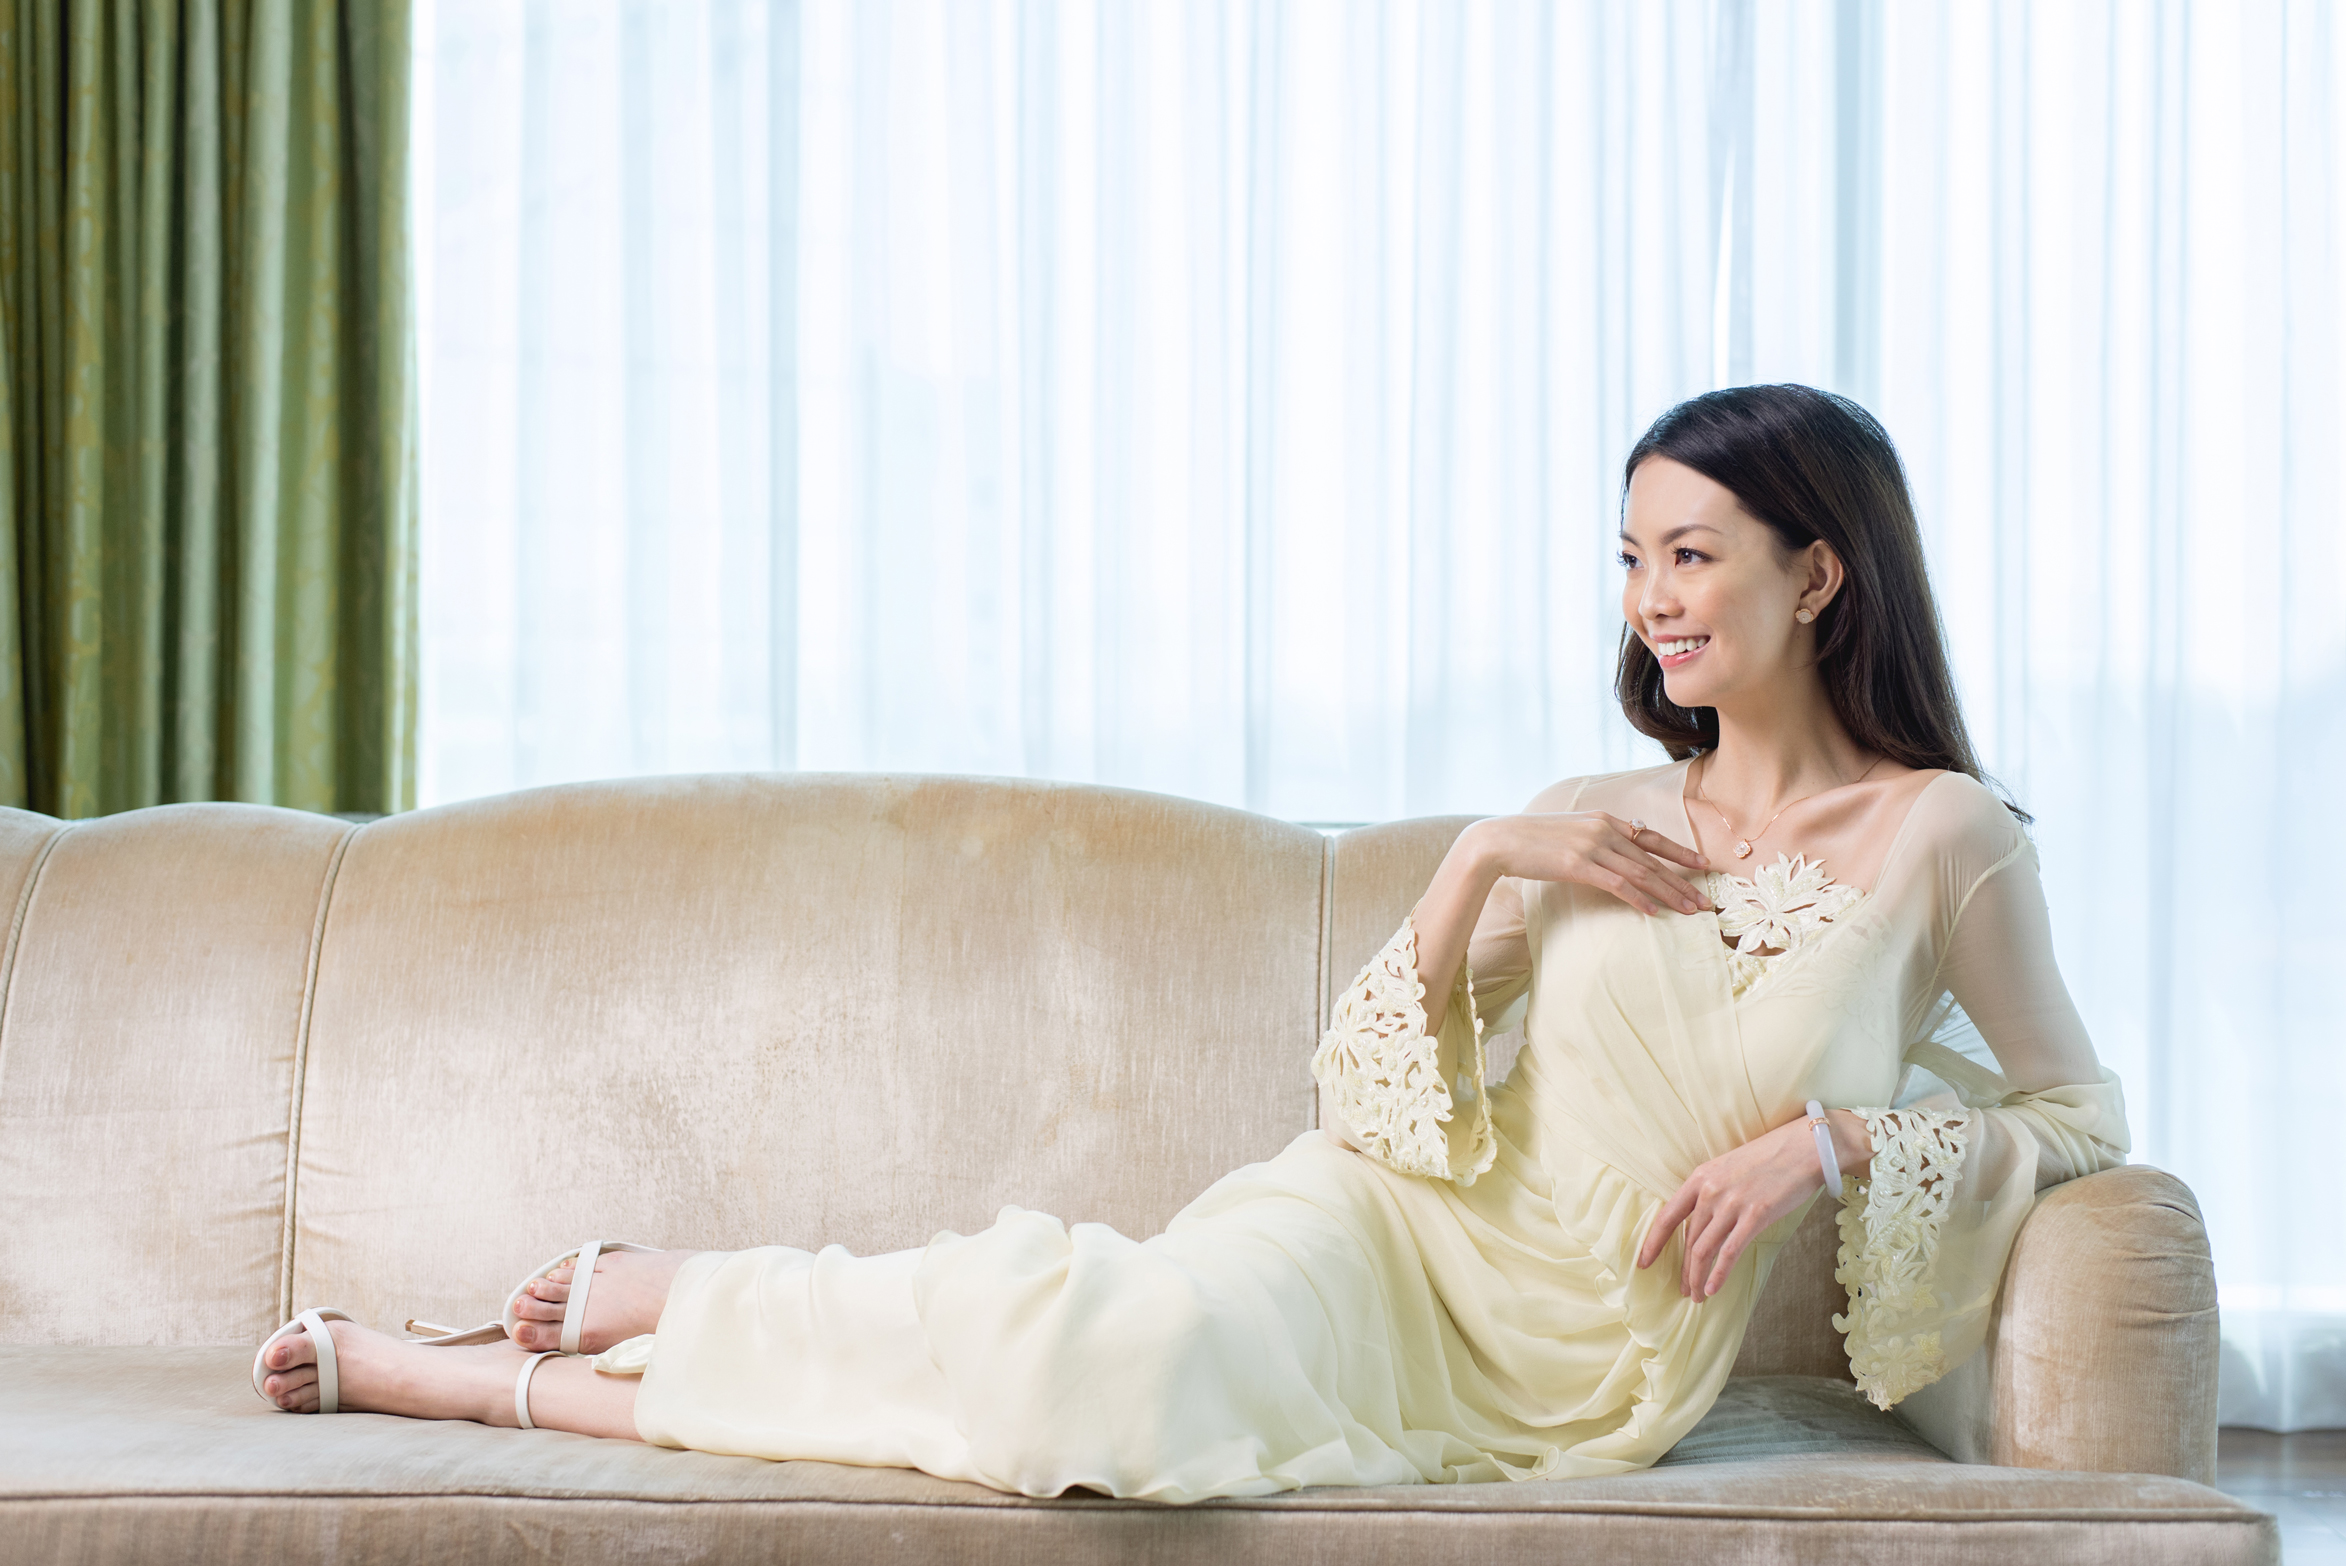 Choo Yilin Warisan Kebaya Collection - St Regis Singapore - Nurita Harith - En Pointe Co - Ice Jade - 18kt gold - rose gold - CYL - Si Dian Jin - Diamonds - Filigree